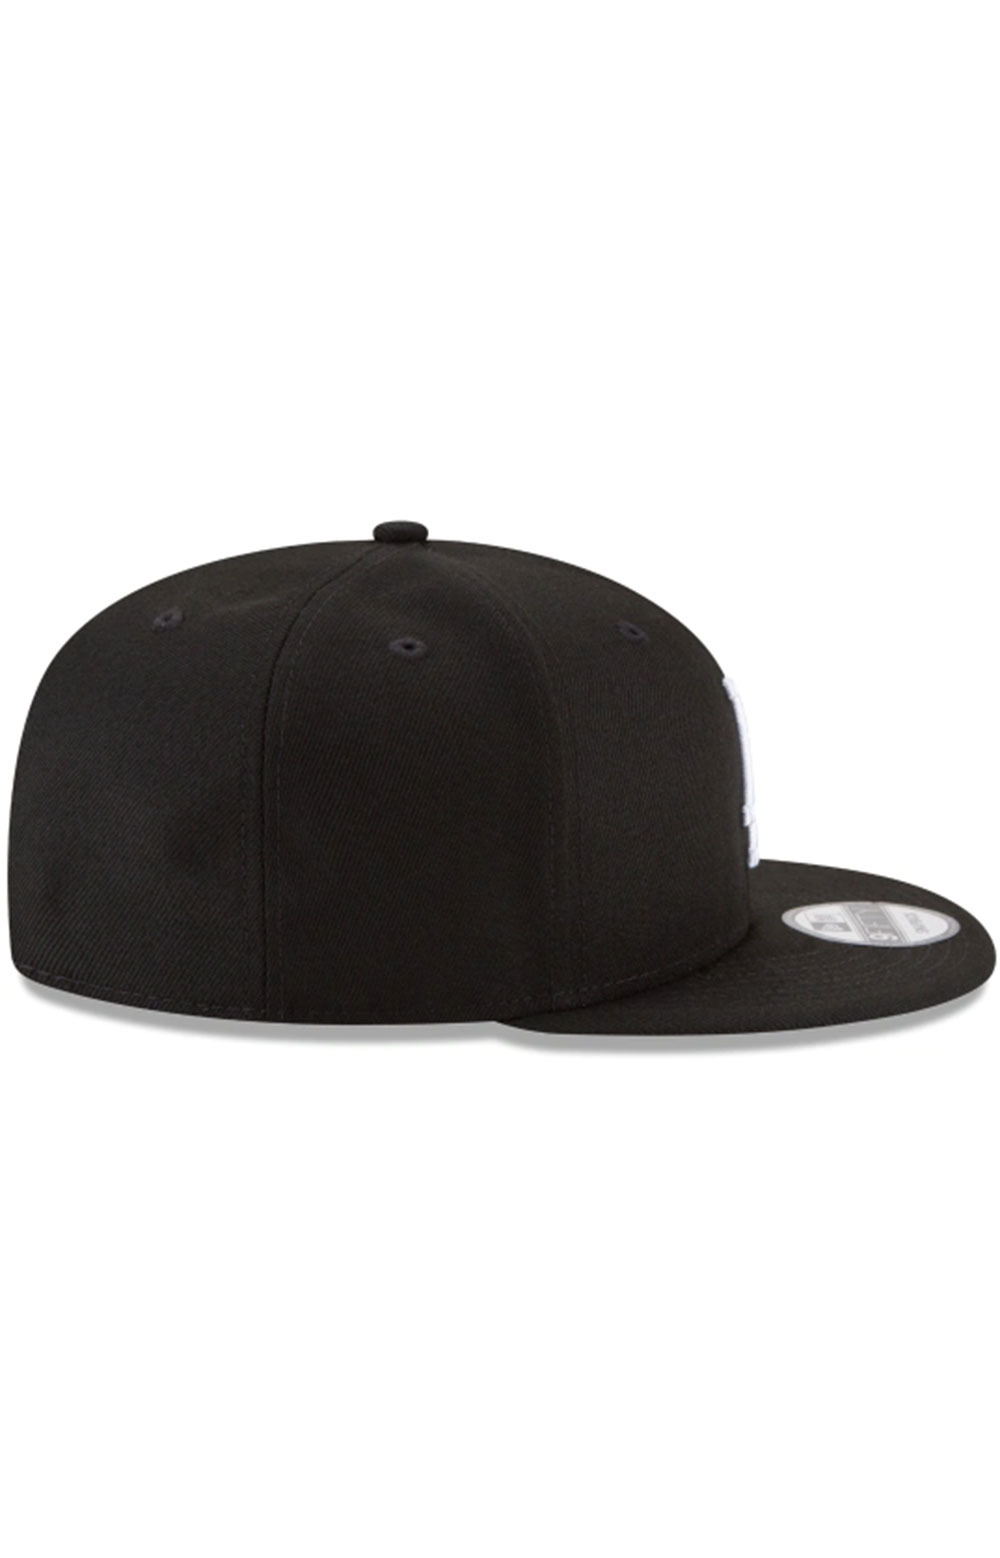 Los Angeles Dodgers Basic 9Fifty Snap-Back Hat - Black/White 2